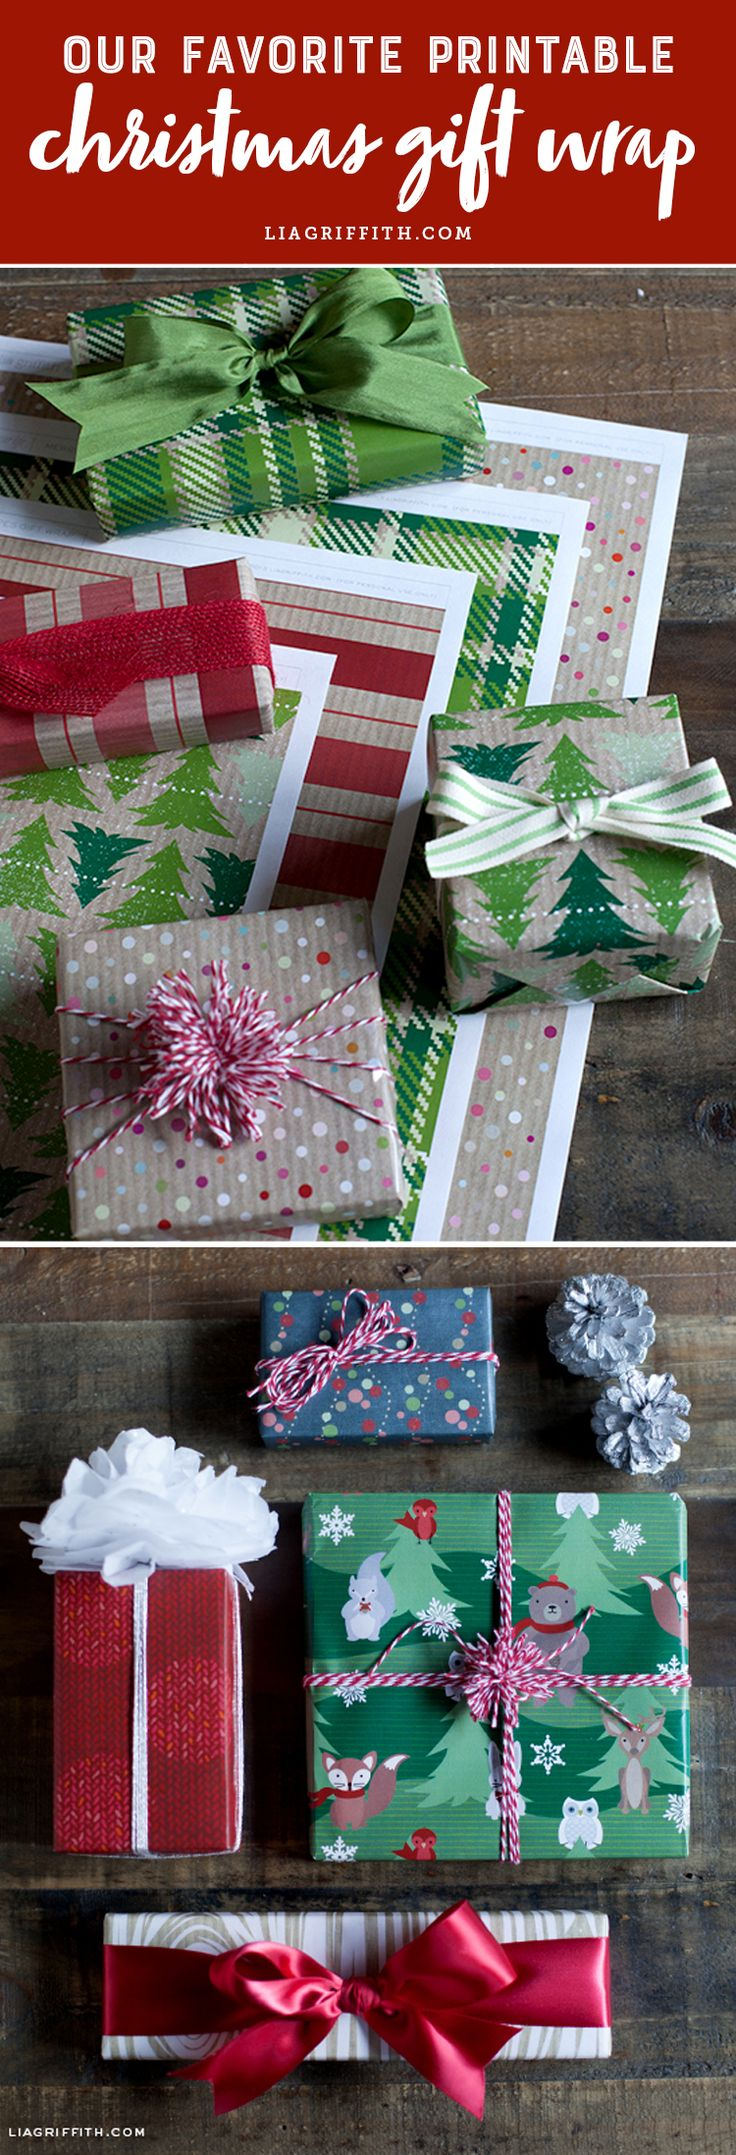 Our Favorite Printable Christmas Gift Wrap - Lia Griffith - www.liagriffith.com #diyinspiration #diygift #diygifts #printable #printables #diygiftwrap #giftwrap #paperart #paper #madewithlia